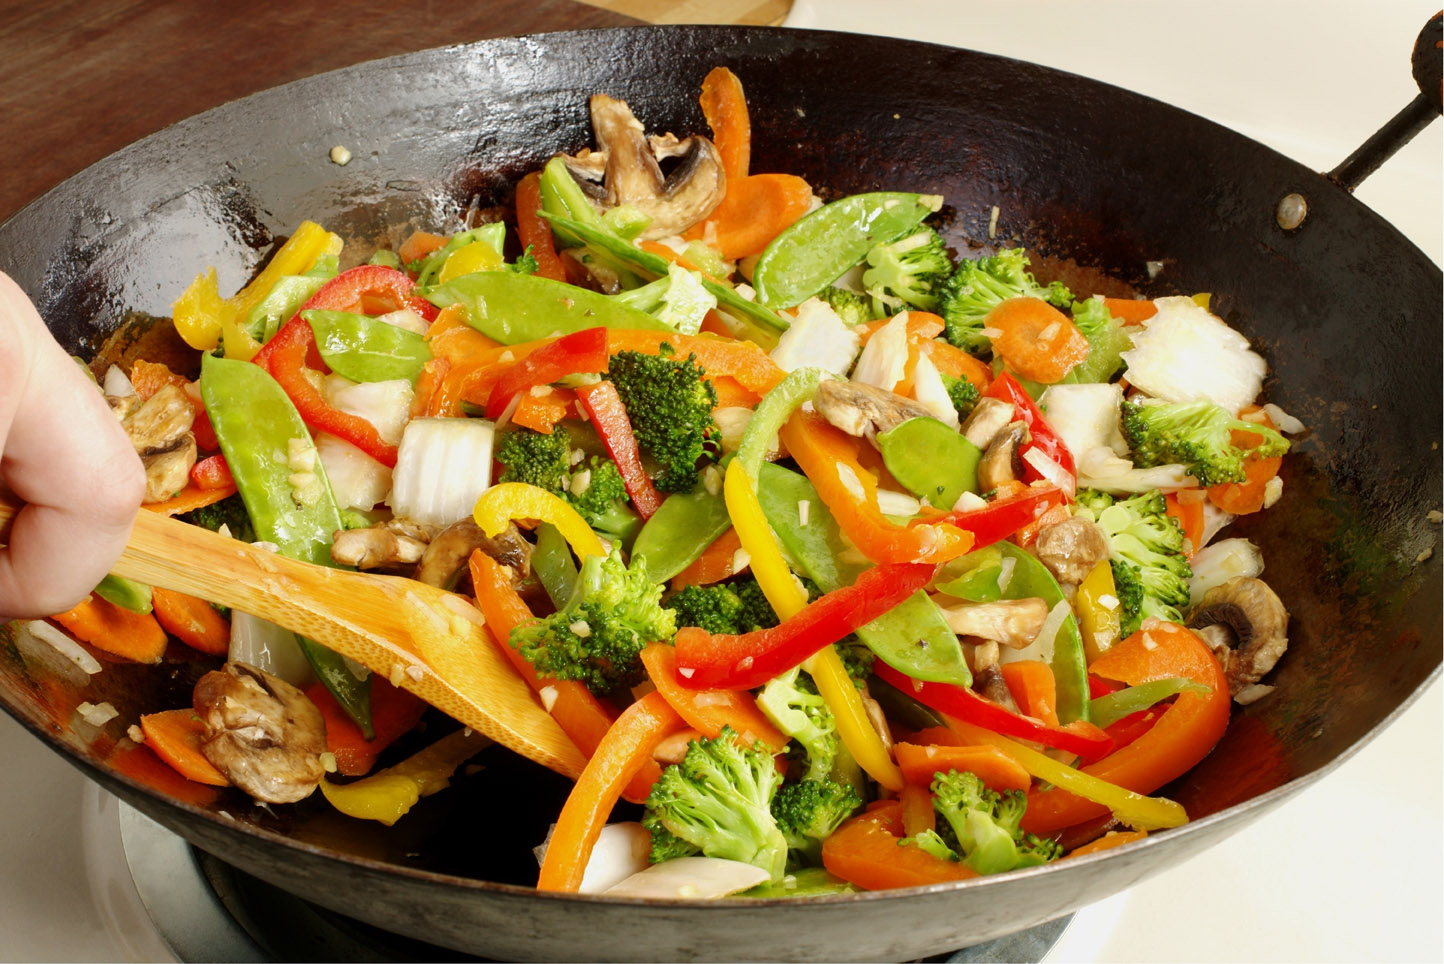 medicated-stir-fry-recipe